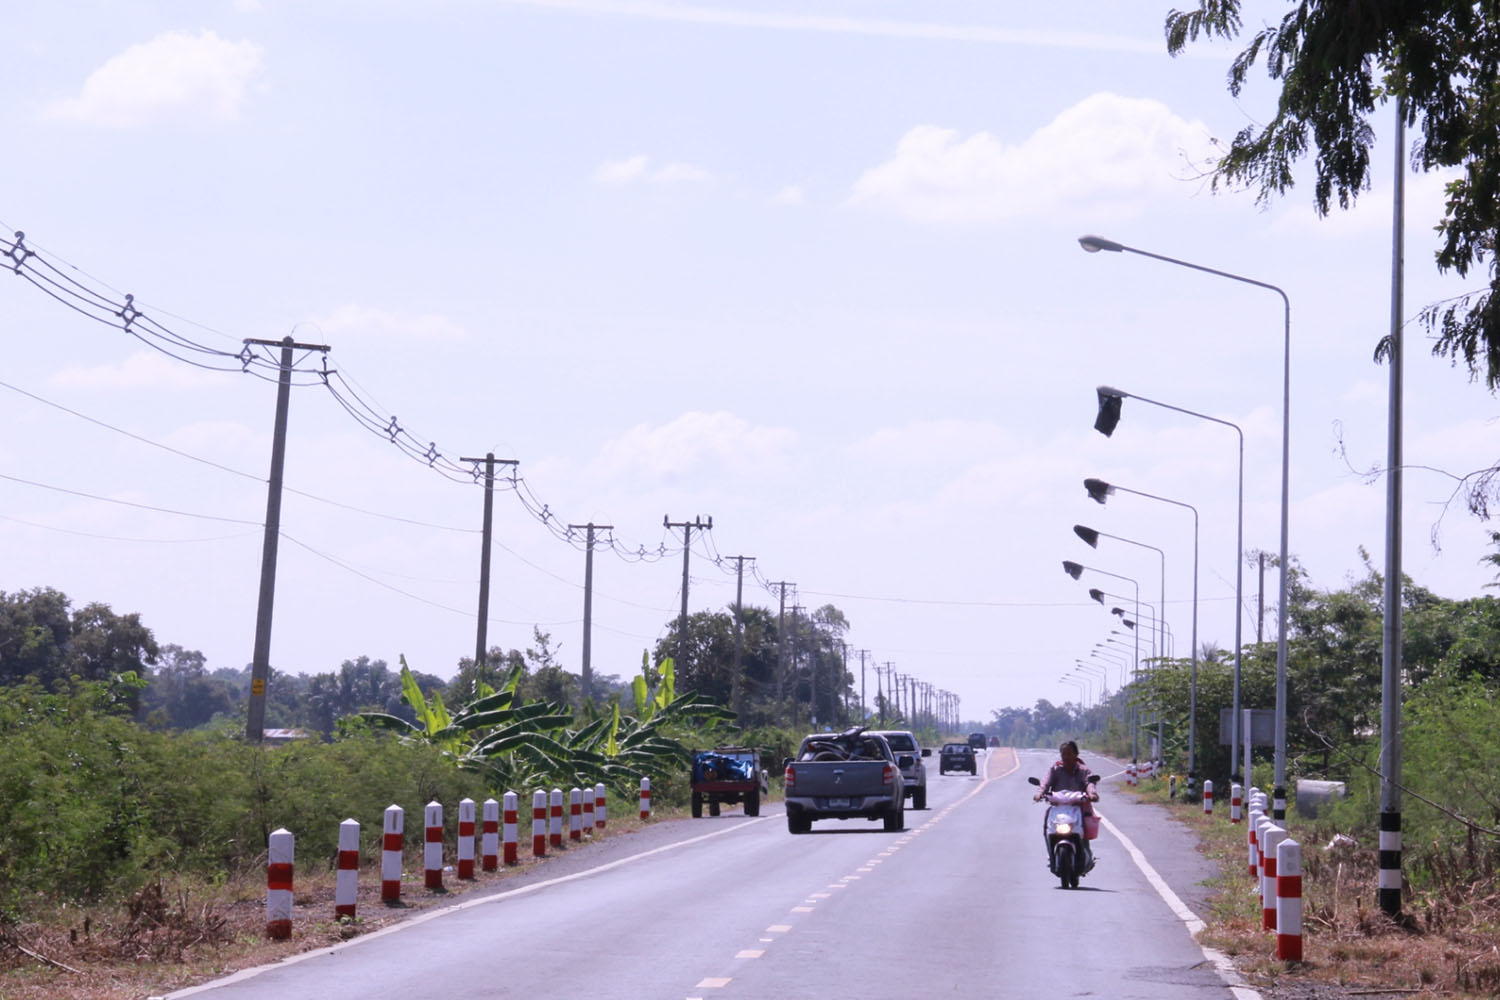 Light bulbs on seven poles along Highway 3001 in Nang Raong district of Buri Ram province are wrapped by fertiliser bags. (Photo by Surachai Piragsa)